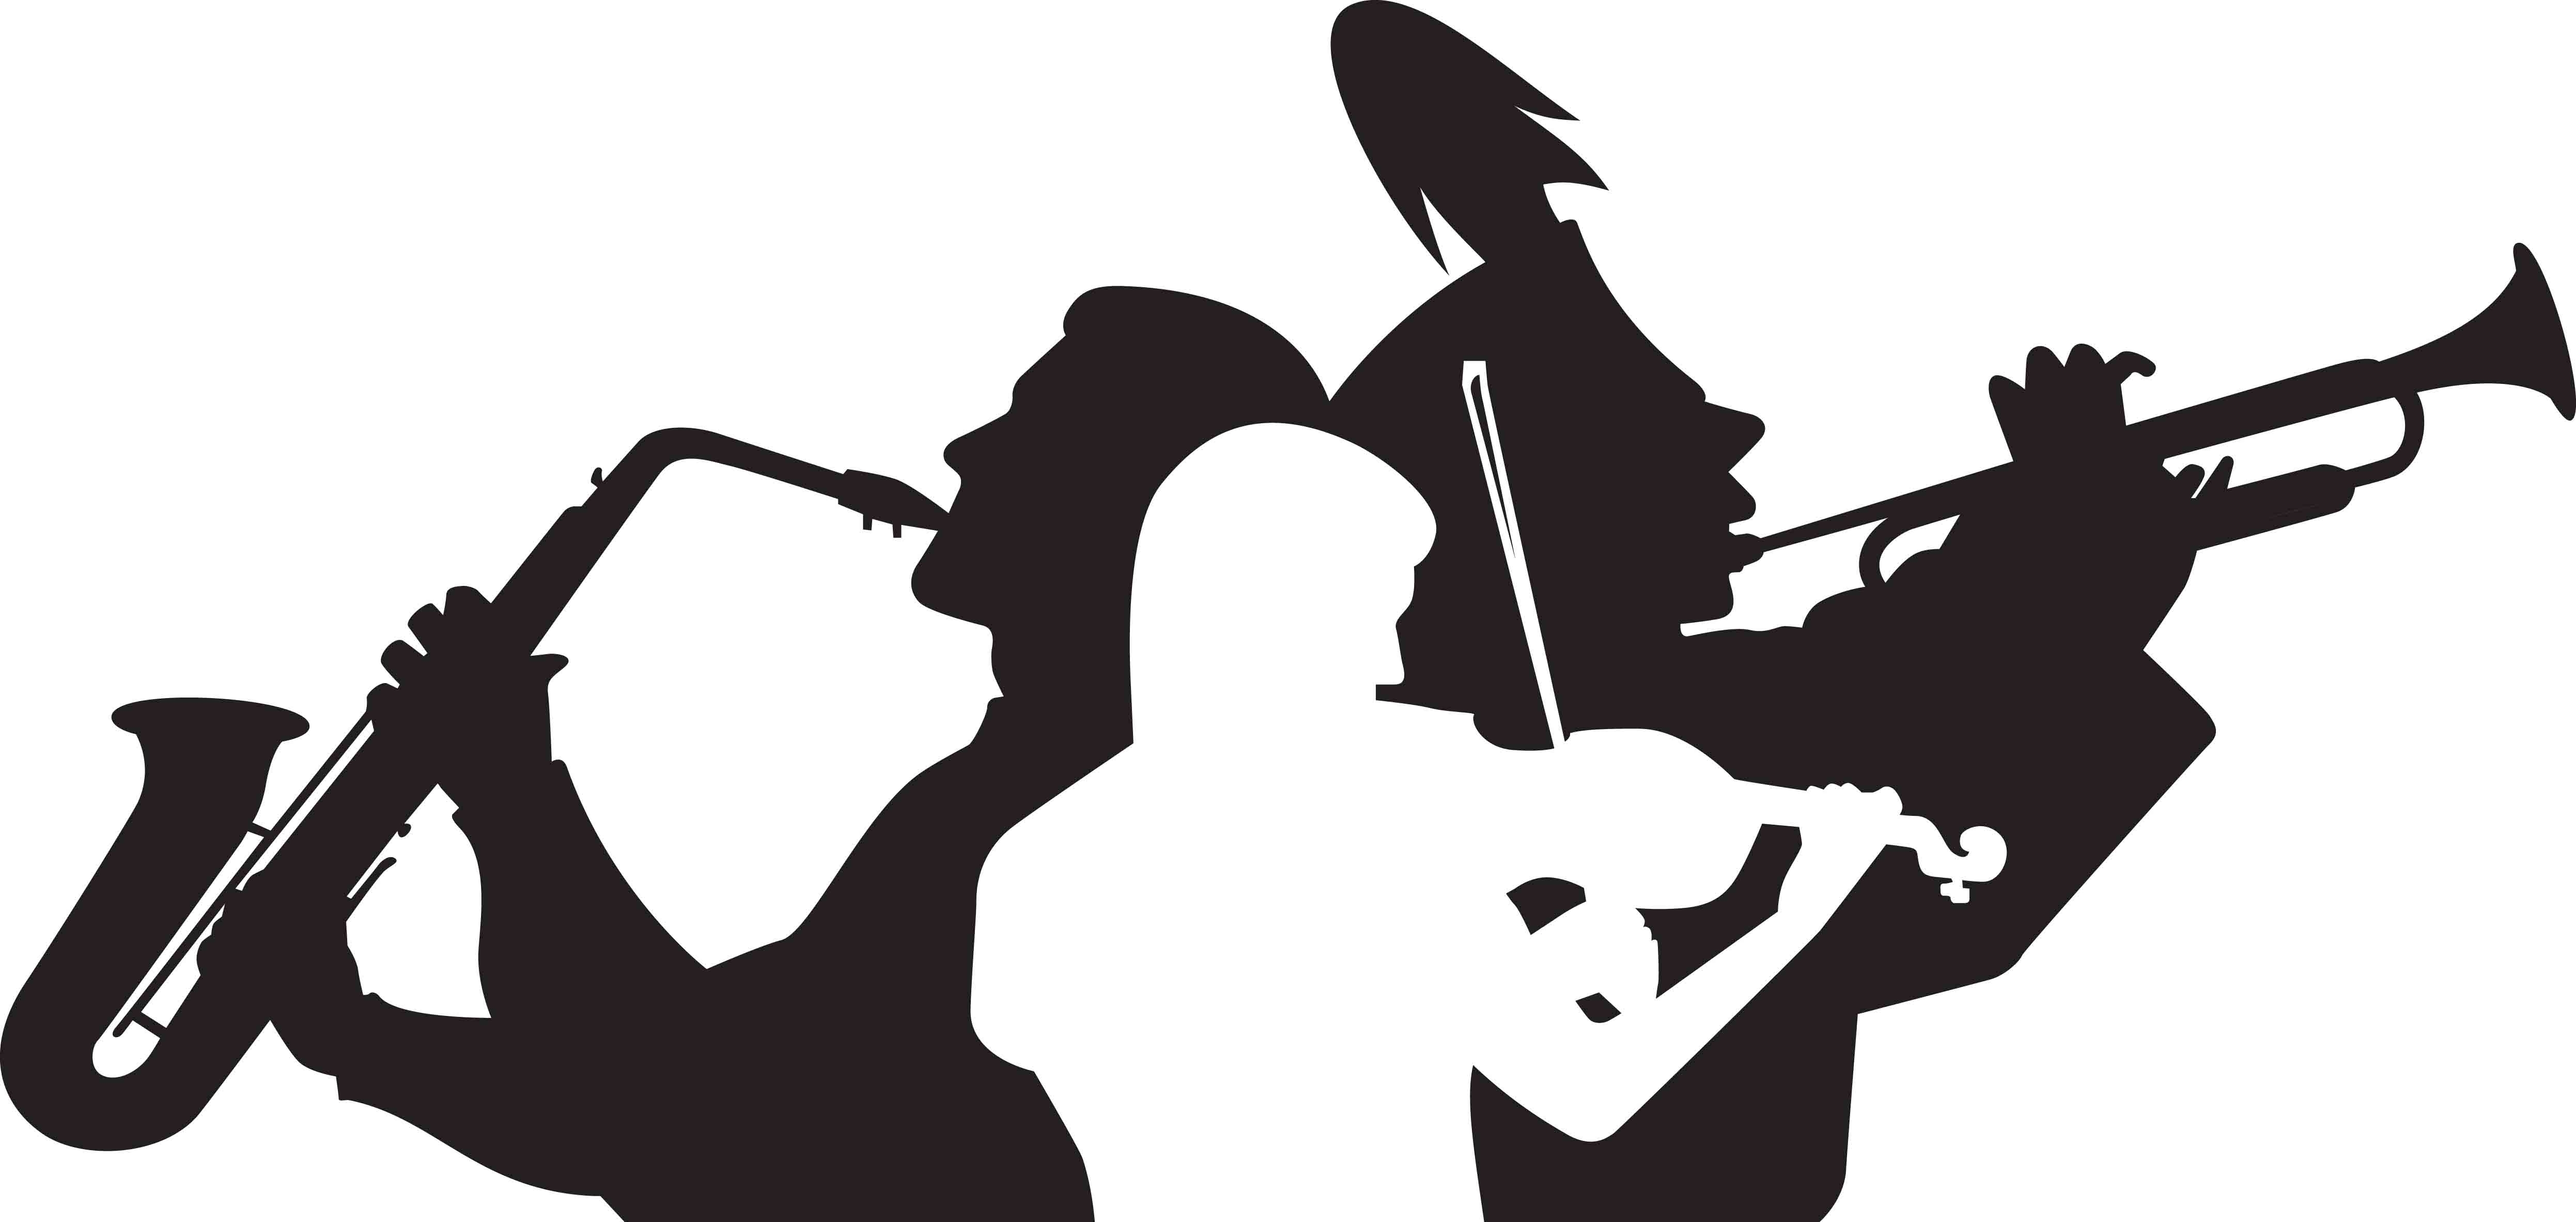 Image of band clipart 2 school clip art clipartoons image